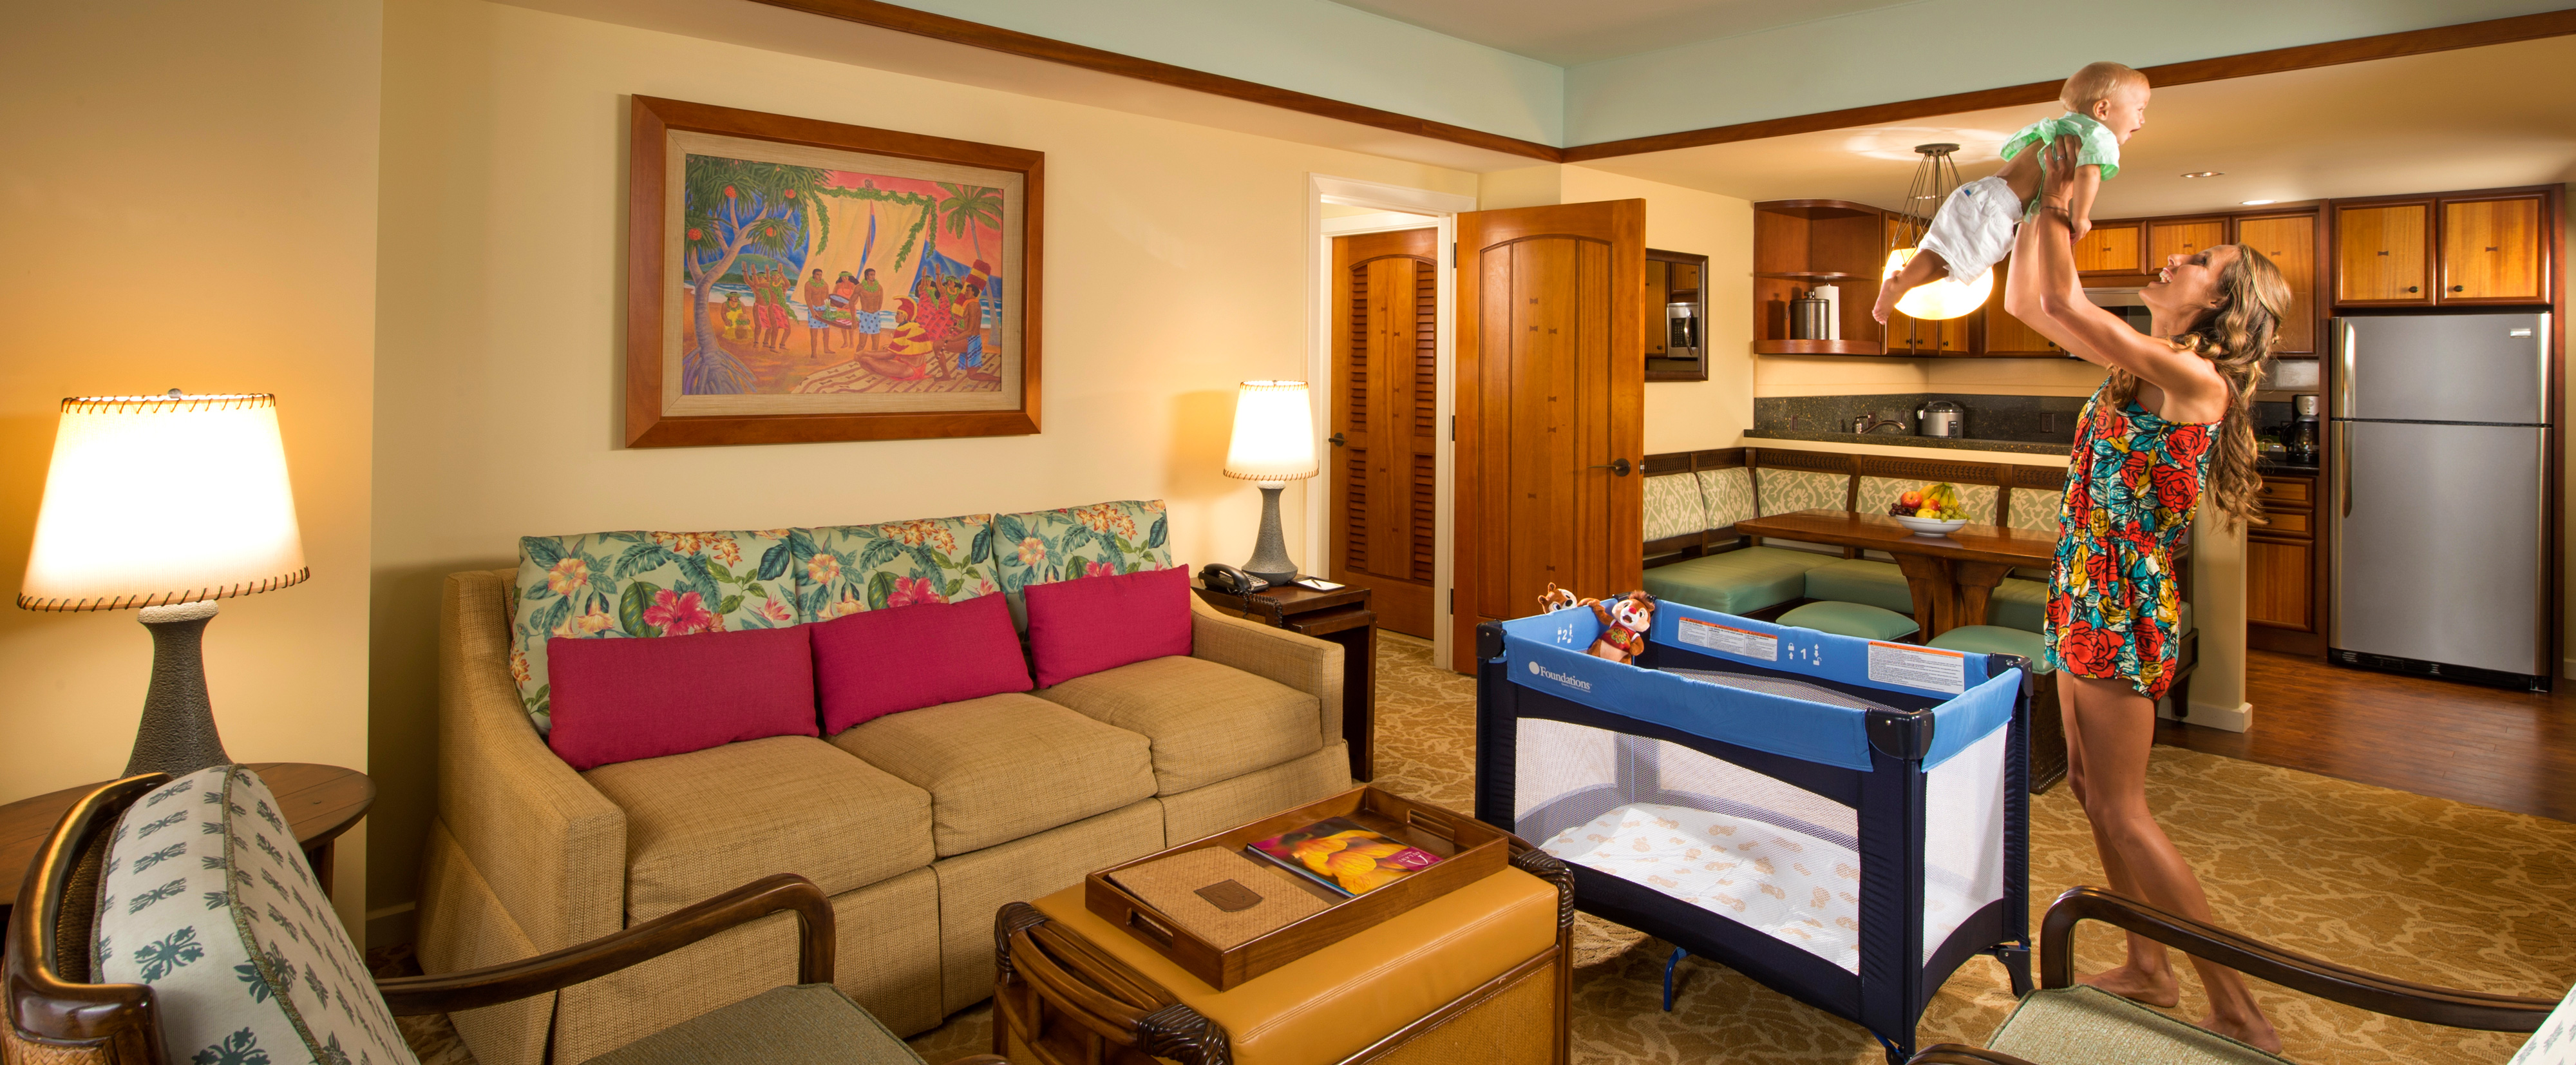 Two bedroom villa aulani hawaii resort spa for Rooms to go living room